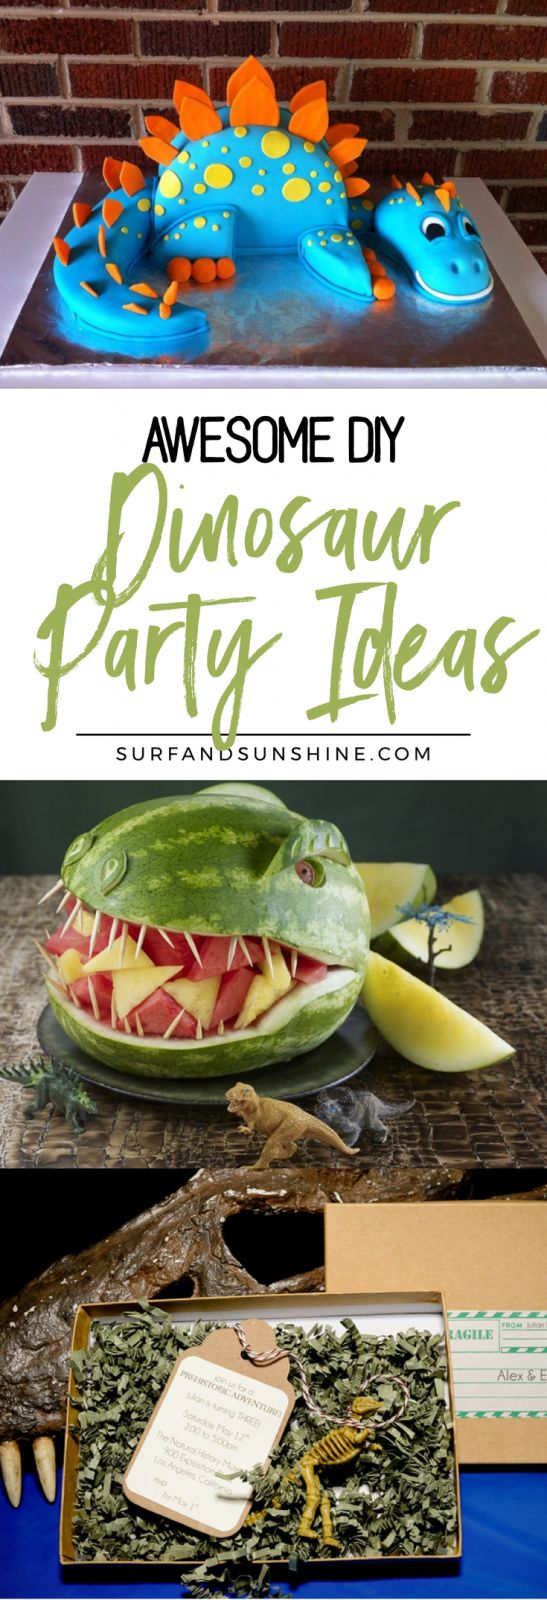 Awesome DIY Dinosaur Party Ideas That Will Make You Roar. Last year a few months before my son's birthday, my neighbor suggested my son's second birthday party revolve around dinosaurs. Not because he had any major interest in the pre-historic animals, bu